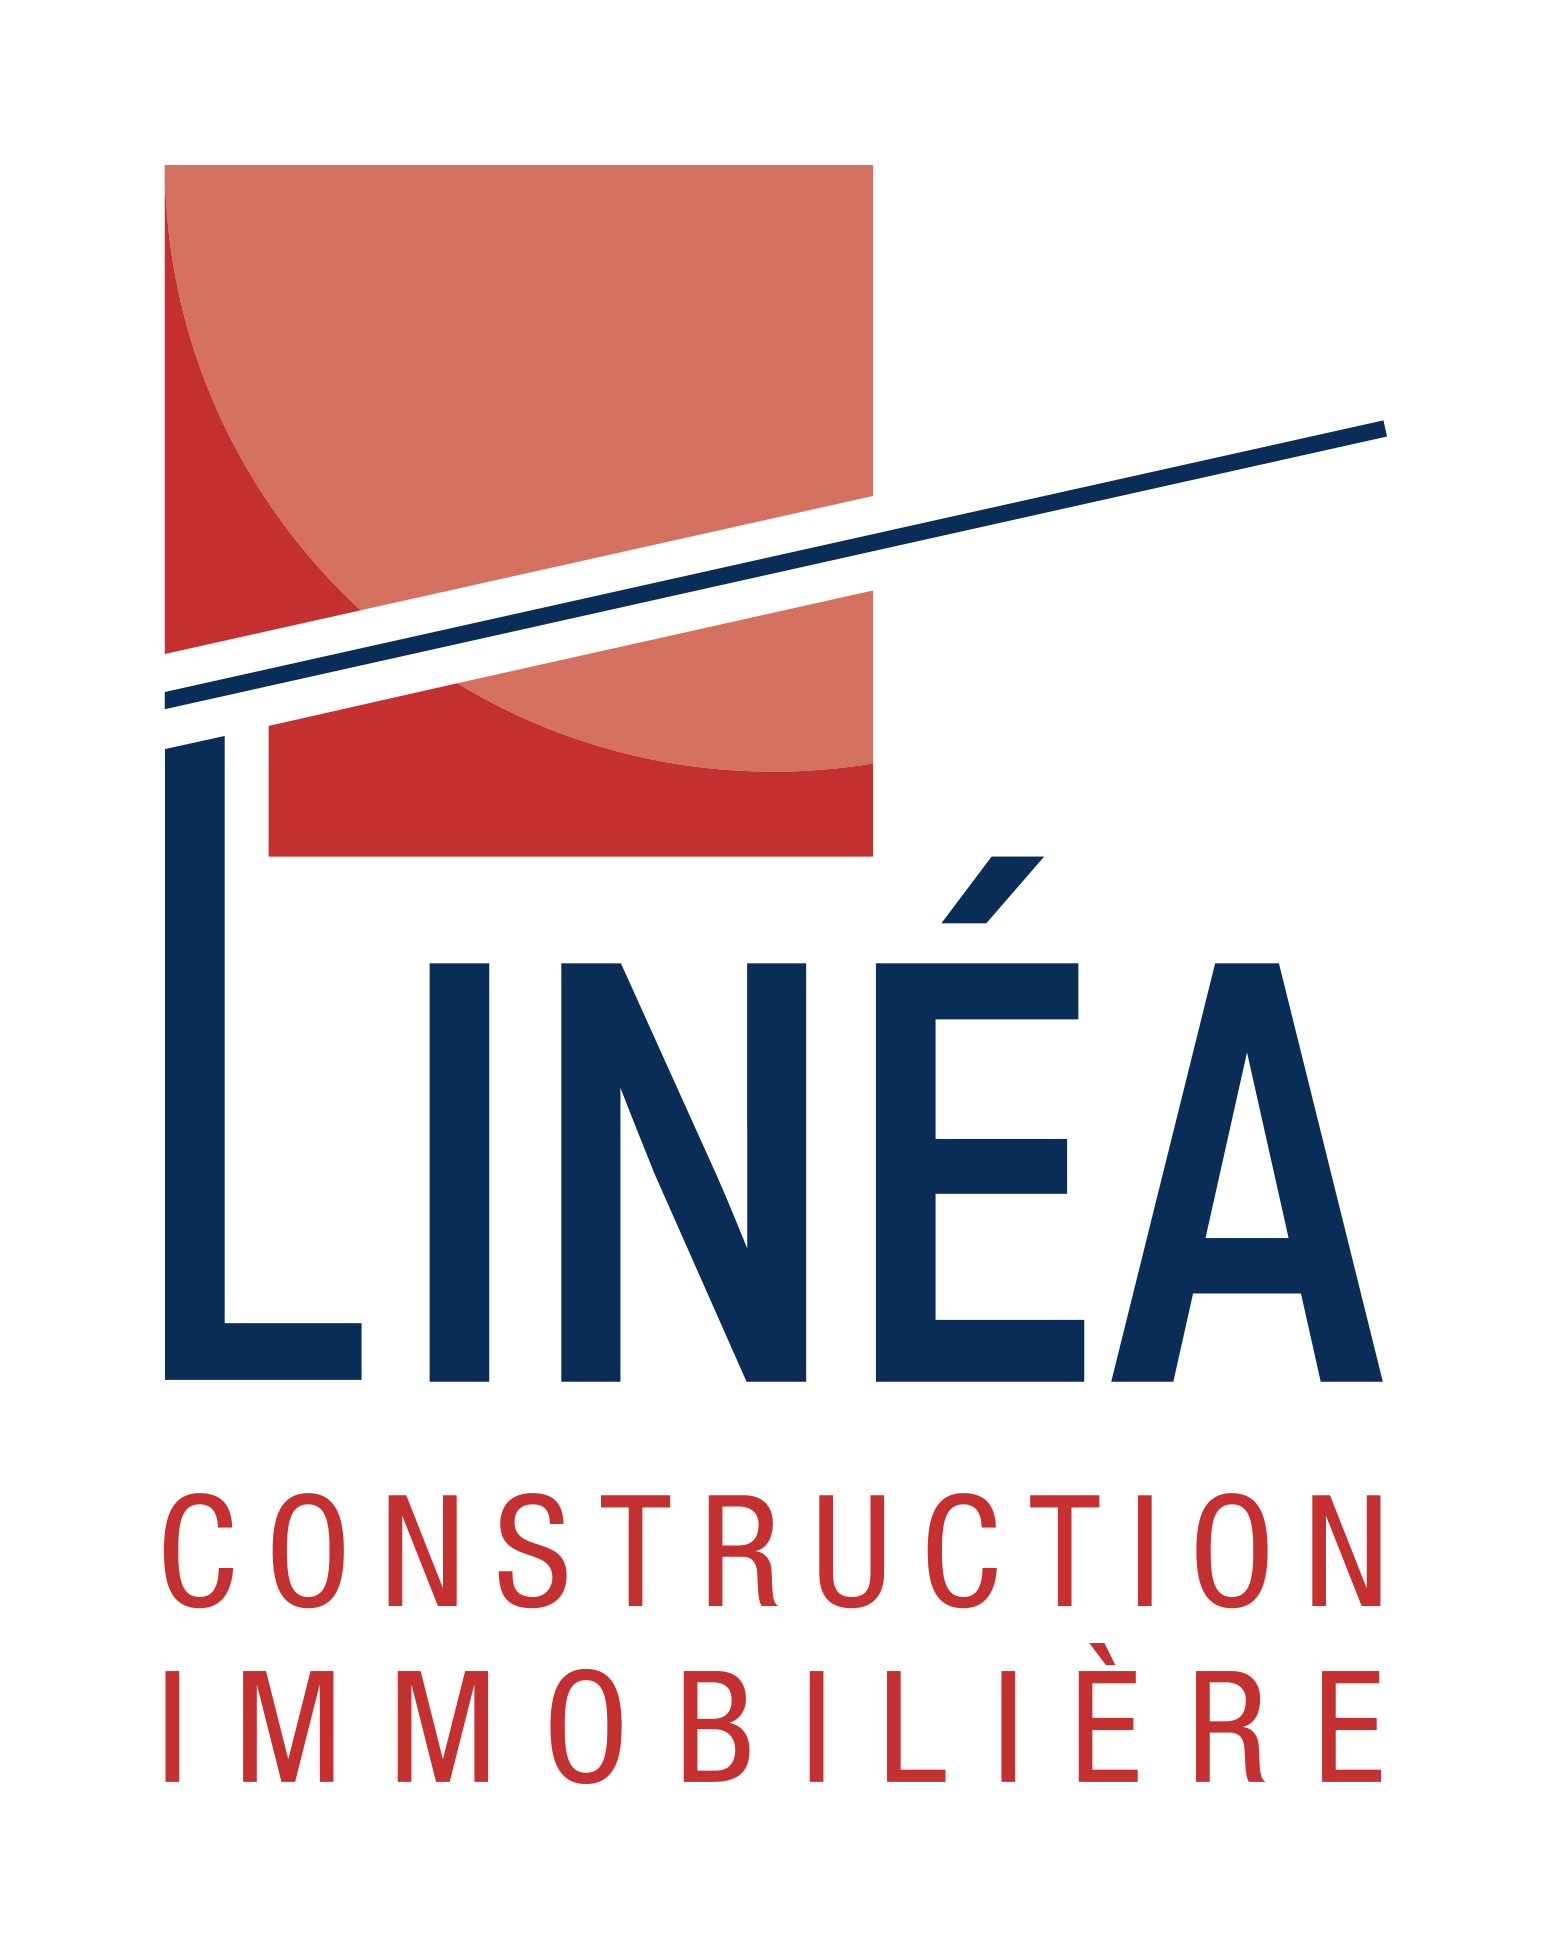 Annuaire des adh rents lca ffb for Construction immobiliere